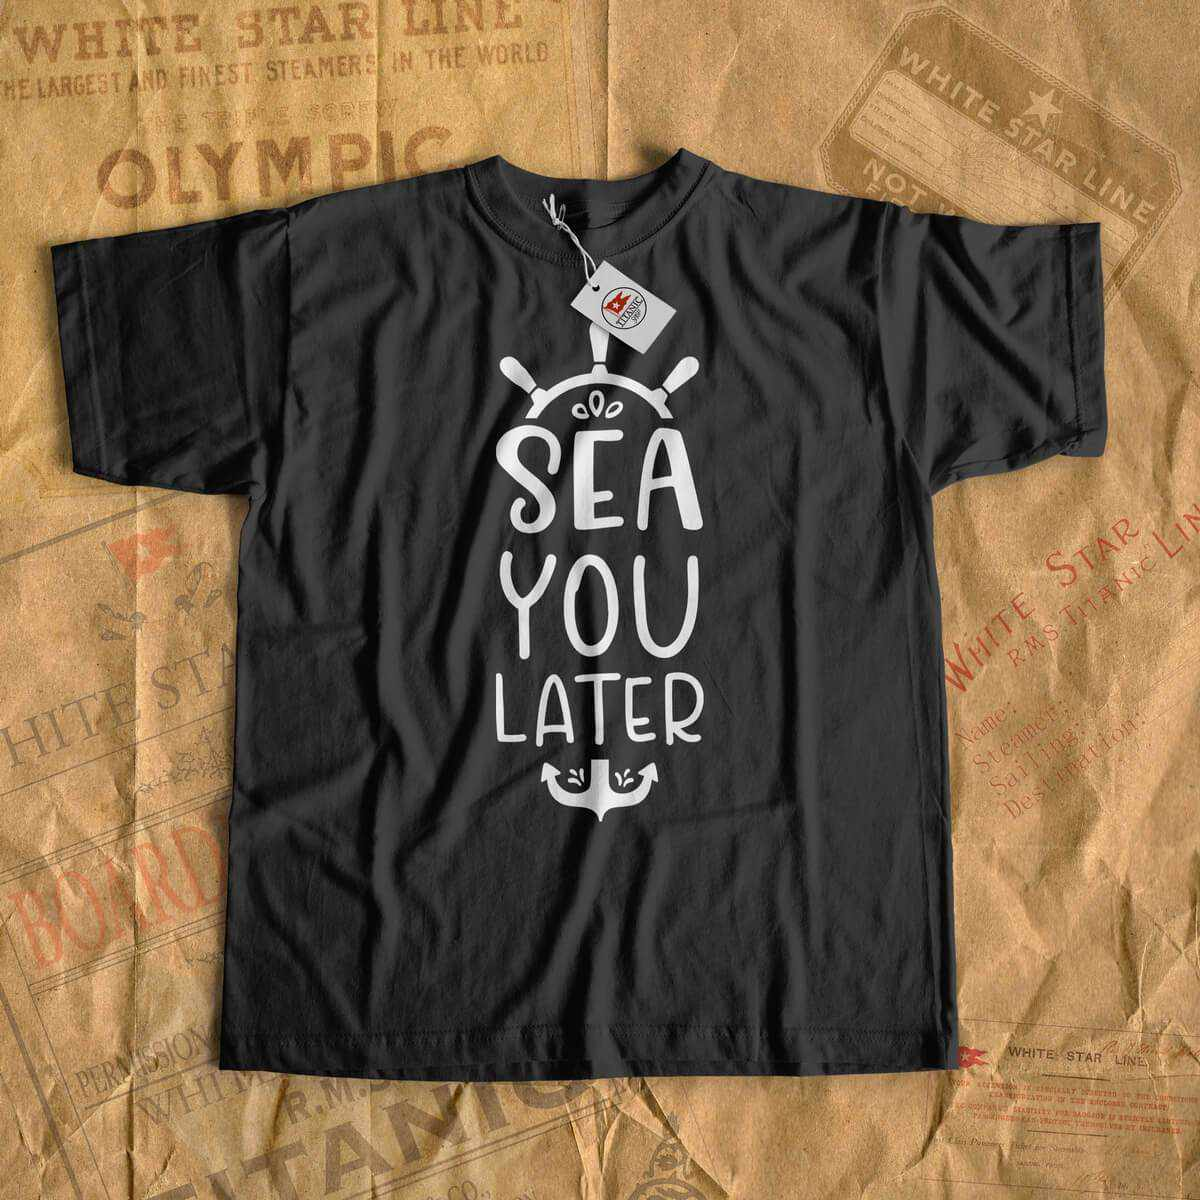 Sea you later - ctuise tshirt, gift for her & him, sea cruise funny gift-T-shirt new-Printify-cruise-sea-ocean-nautical-tee-shirt-tshirt-Titanic shop